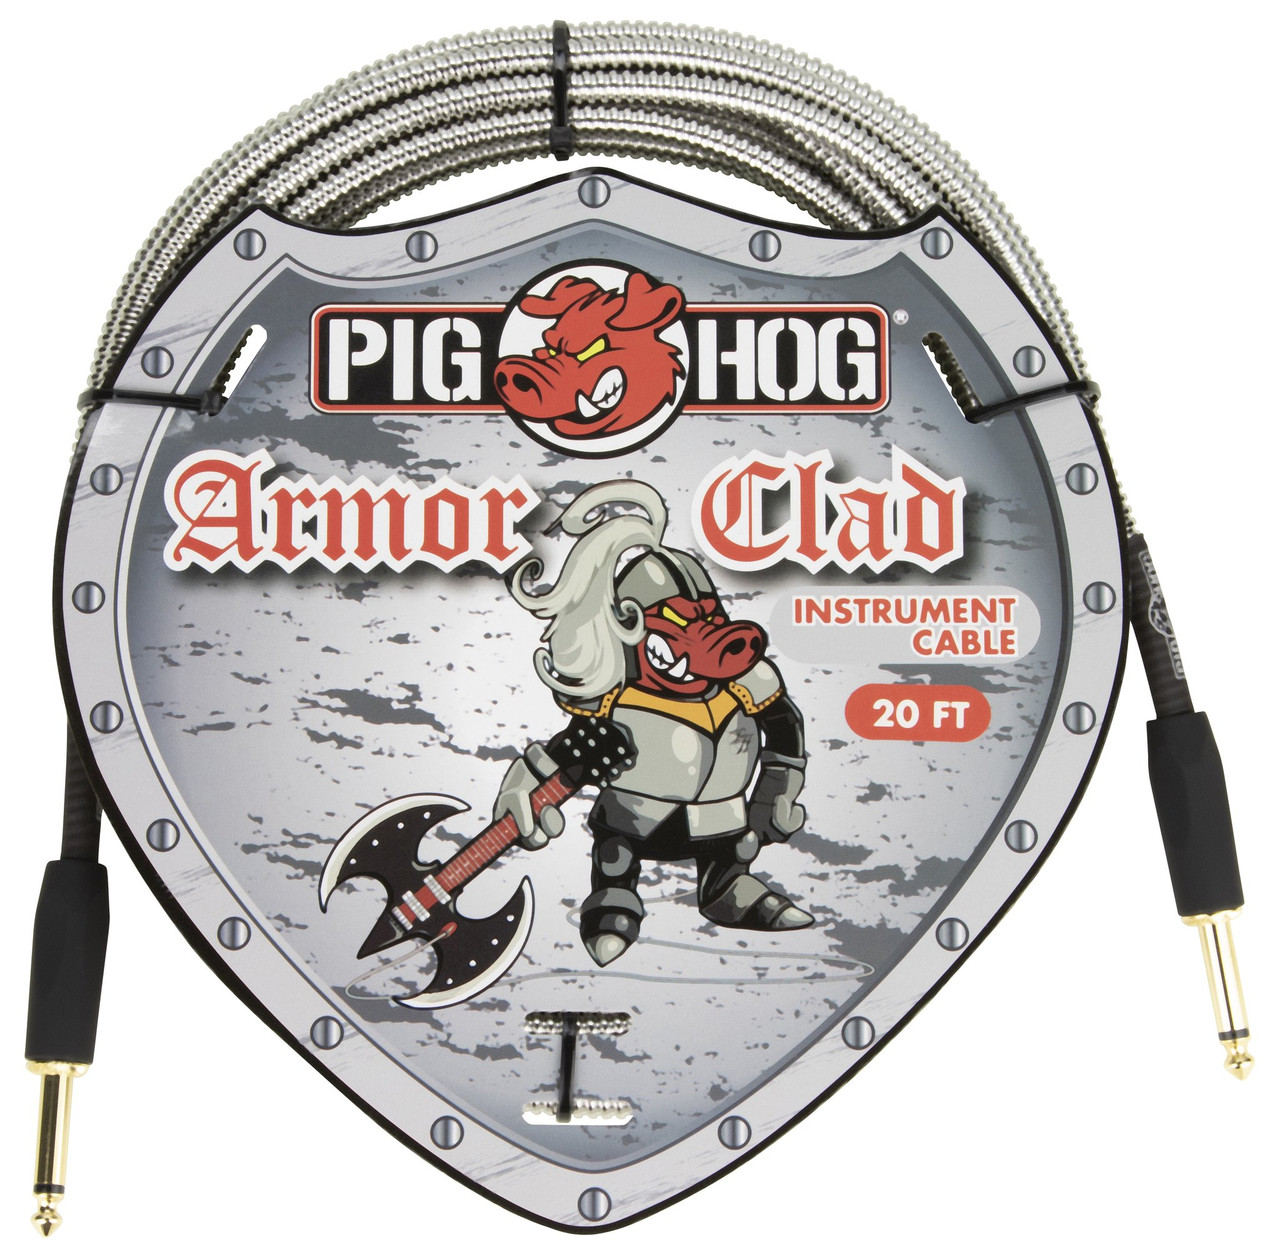 20ft Pig Hog PHAC-20 Armor Clad 1/4 Inch Instrument Cable